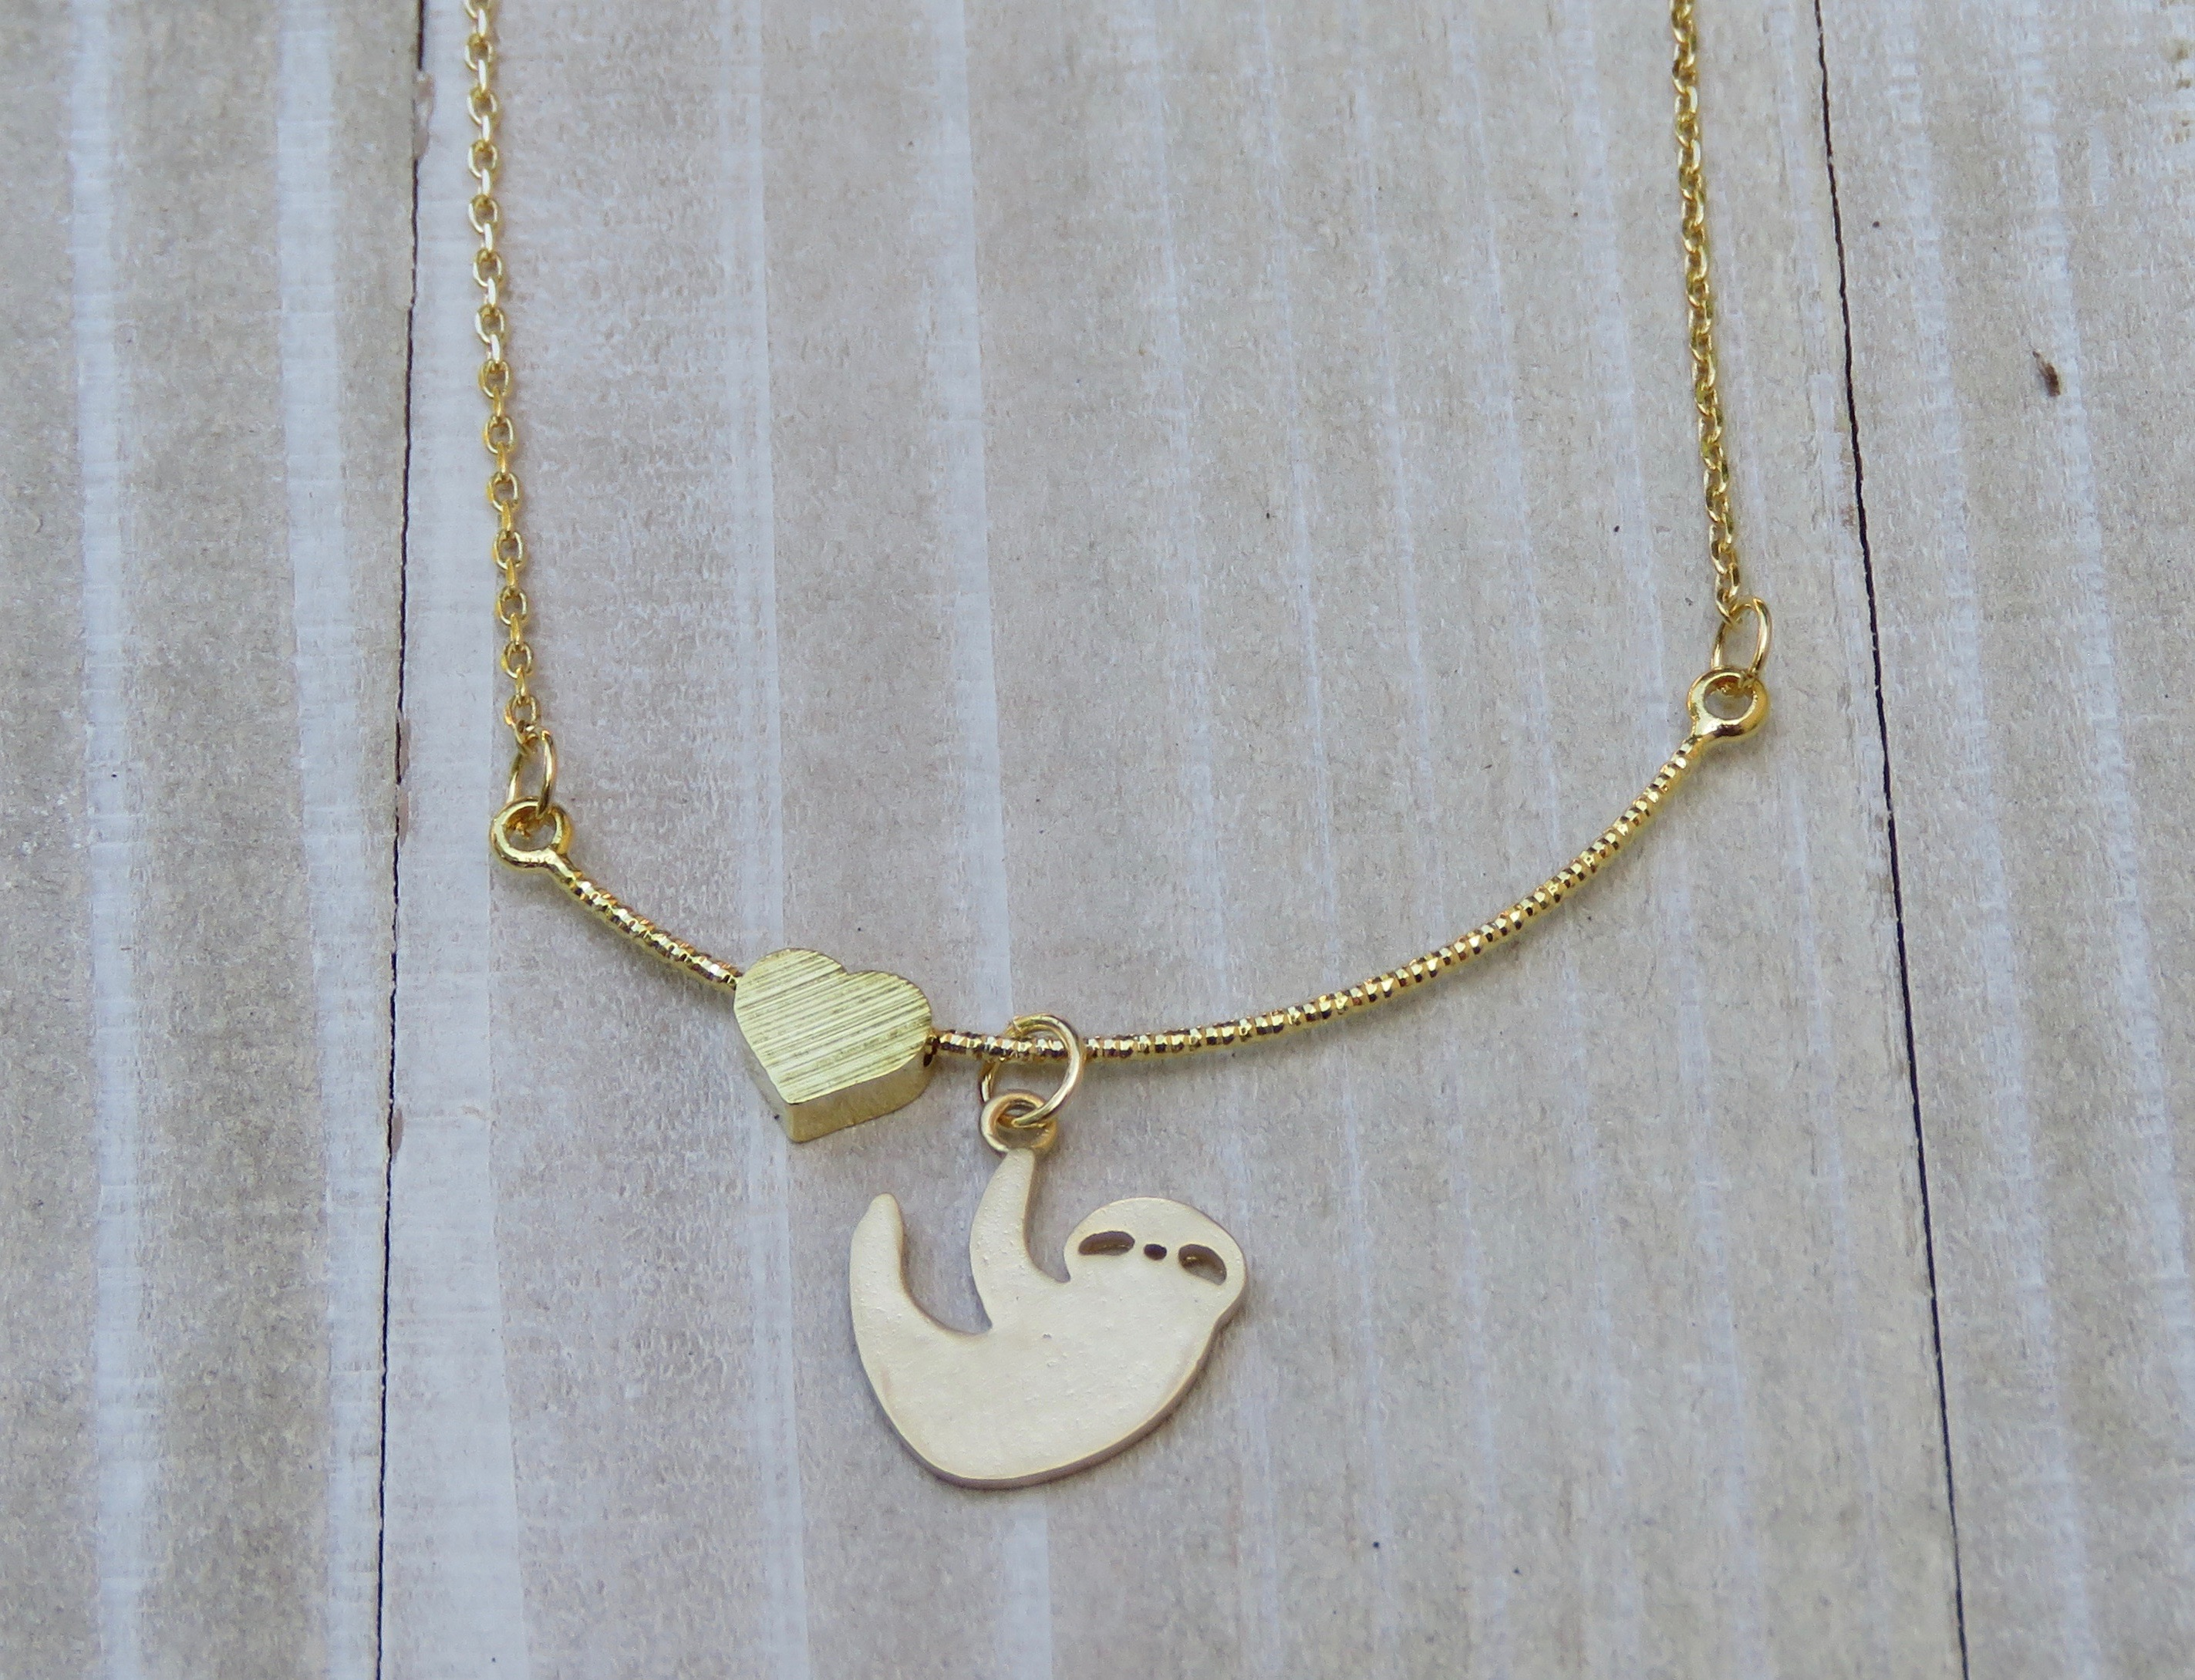 14k Gold Filled Moon and Star Pendant Necklace for Women to Wear on a Daily Basis Night Symbol Everyday Jewelry for Women